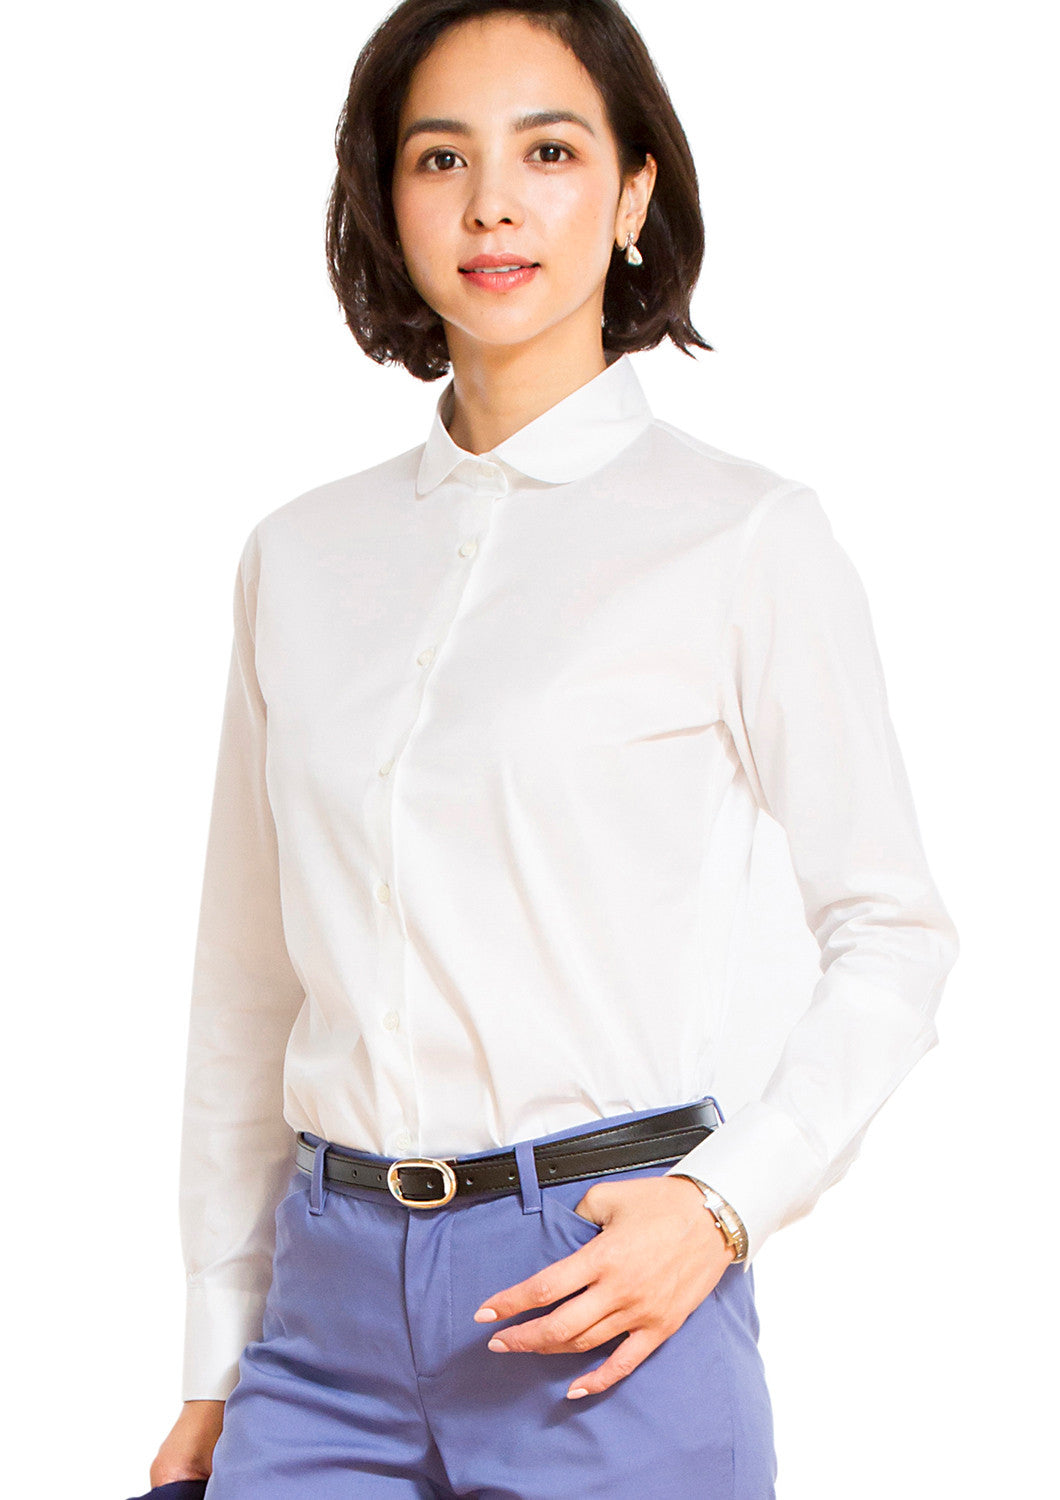 Premium Stretch Easy Care Rounded Point Collar Long Sleeve Shirt White - LEONIS SHIRTS & FAVORITES